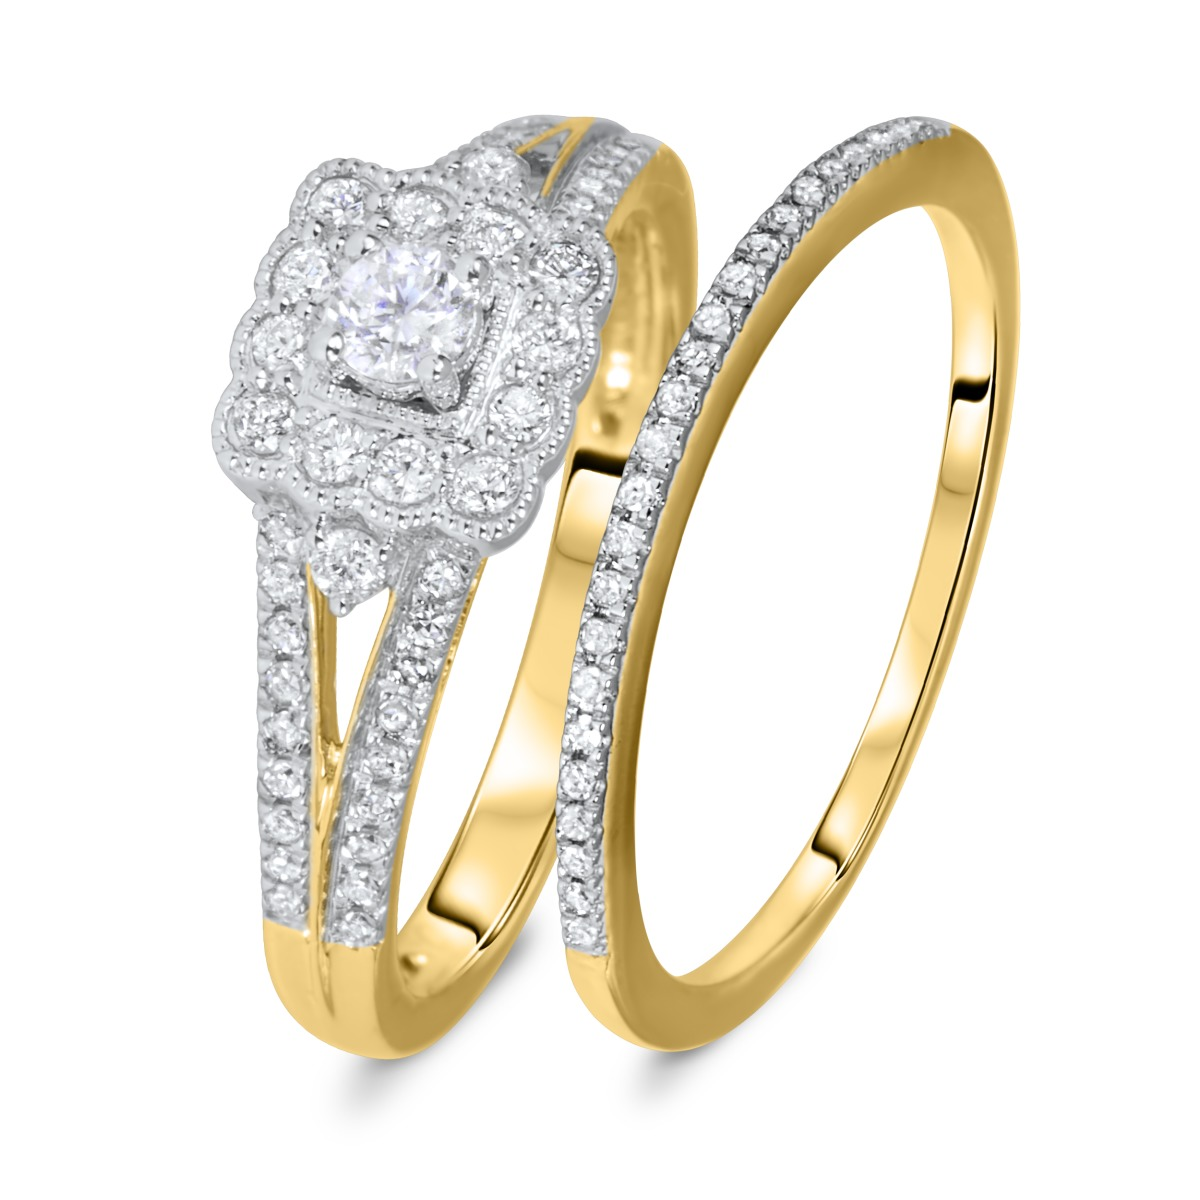 1/2 CT. T.W. Round Cut Diamond Ladies Bridal Wedding Ring Set 10K Yellow Gold